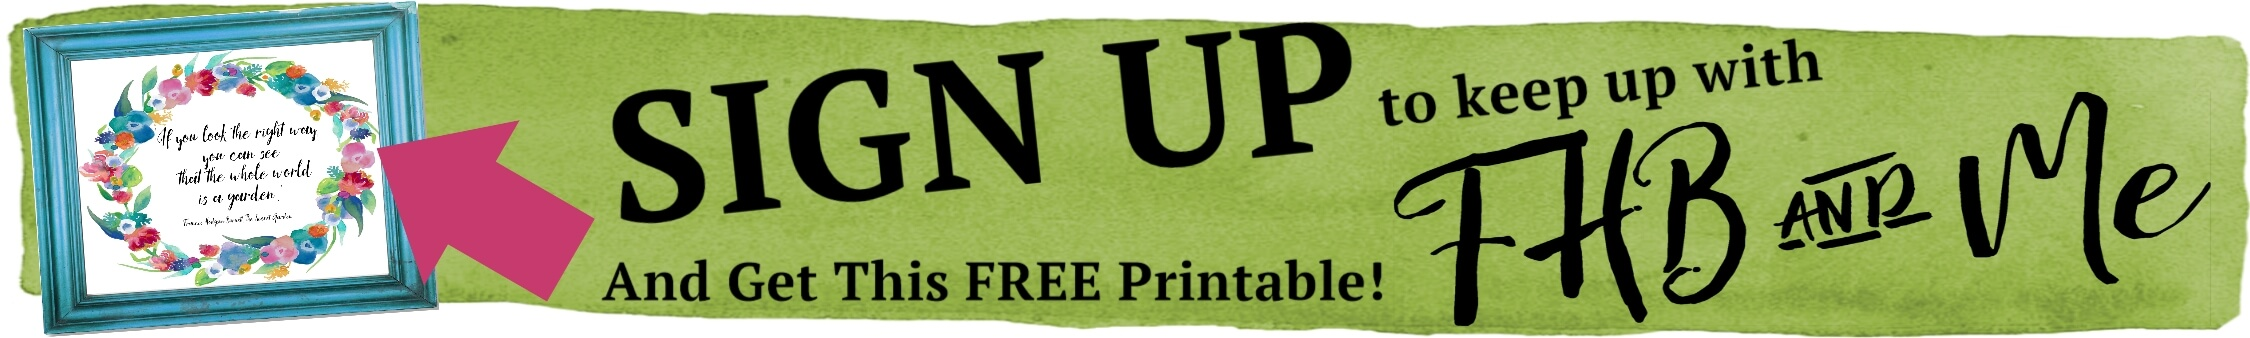 Sign Up to Keep Up with FHB and Me and get a FREE PRINTABLE